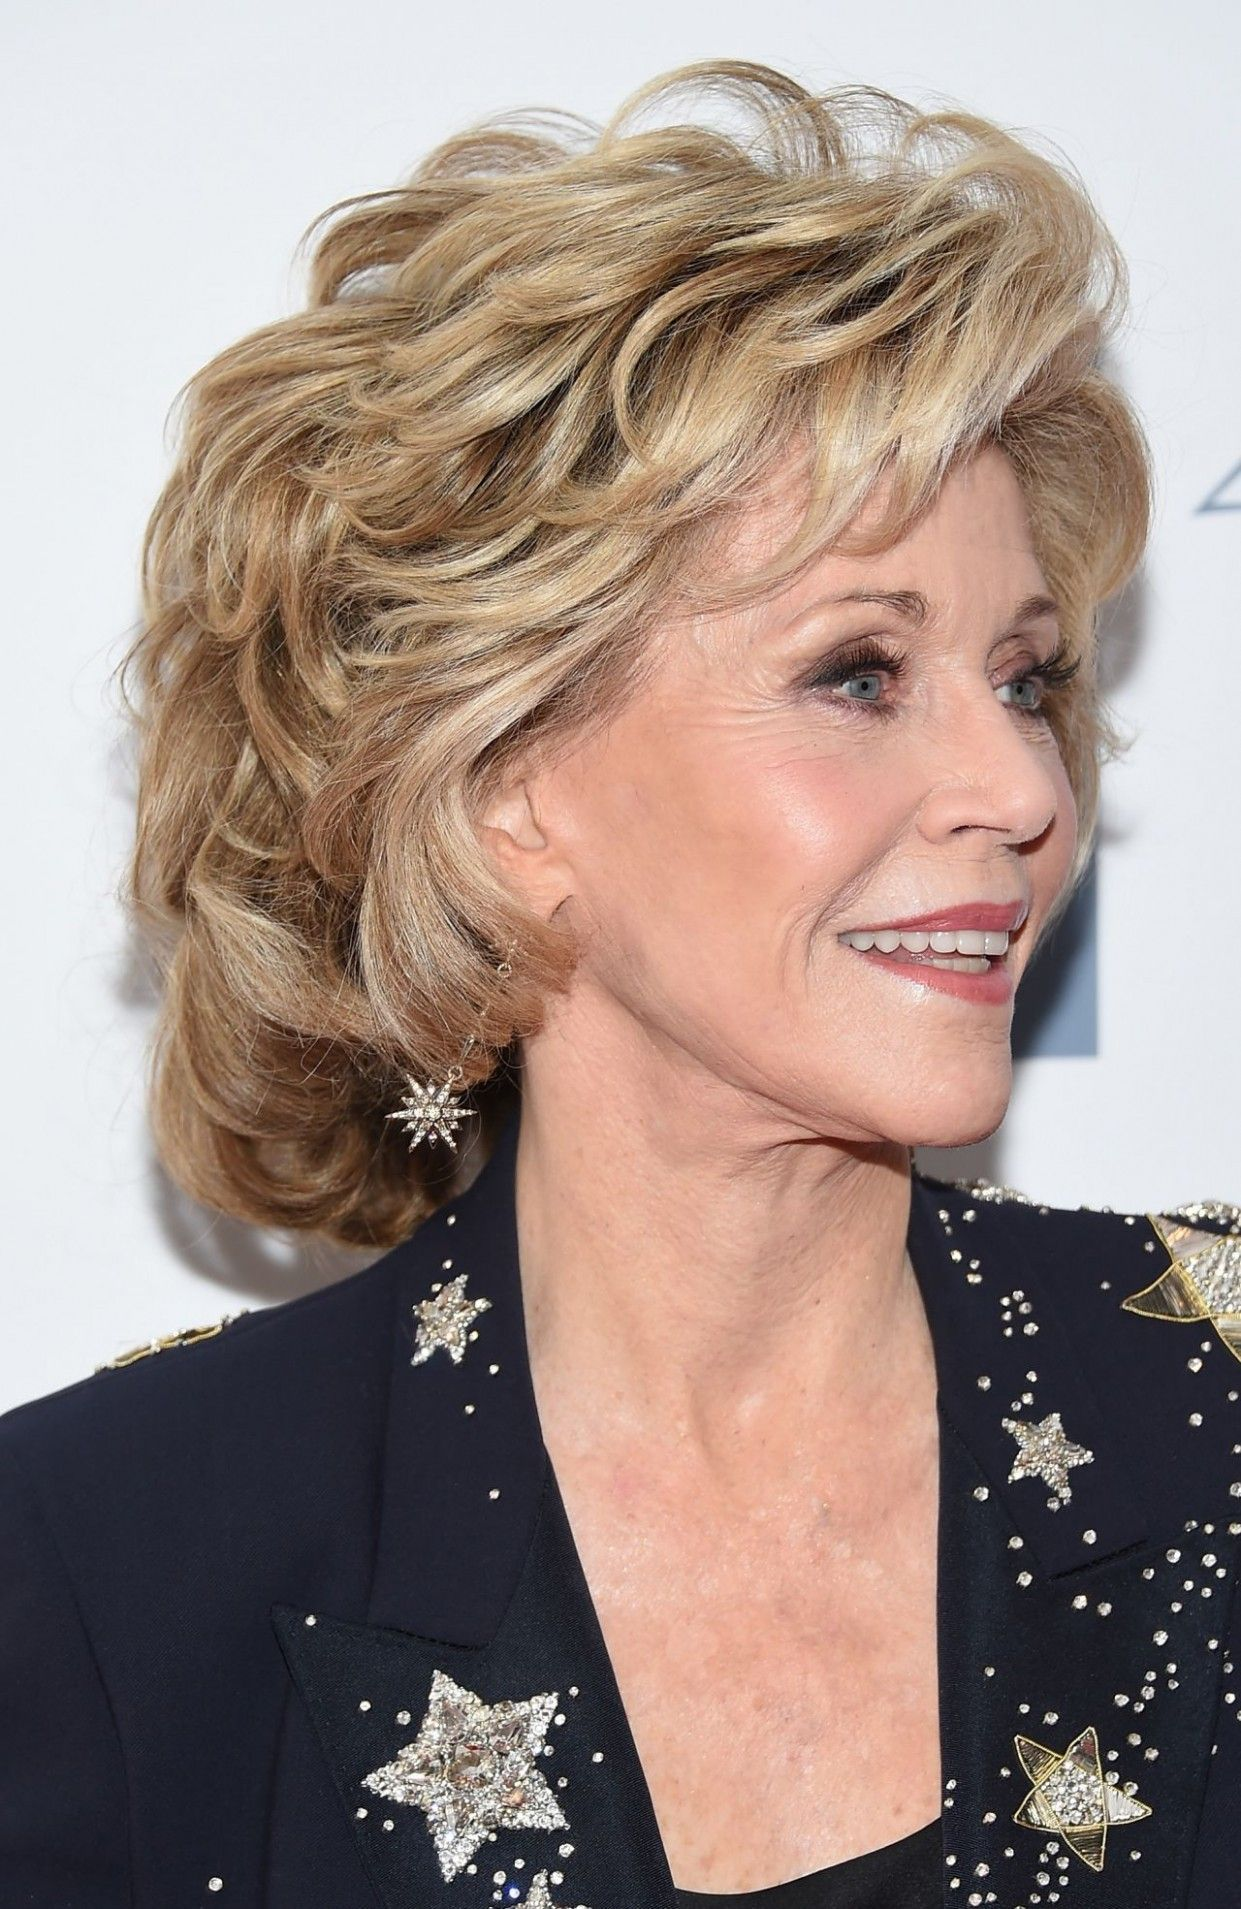 15 savory hairlook hairstyles ideas jane fonda. Black Bedroom Furniture Sets. Home Design Ideas